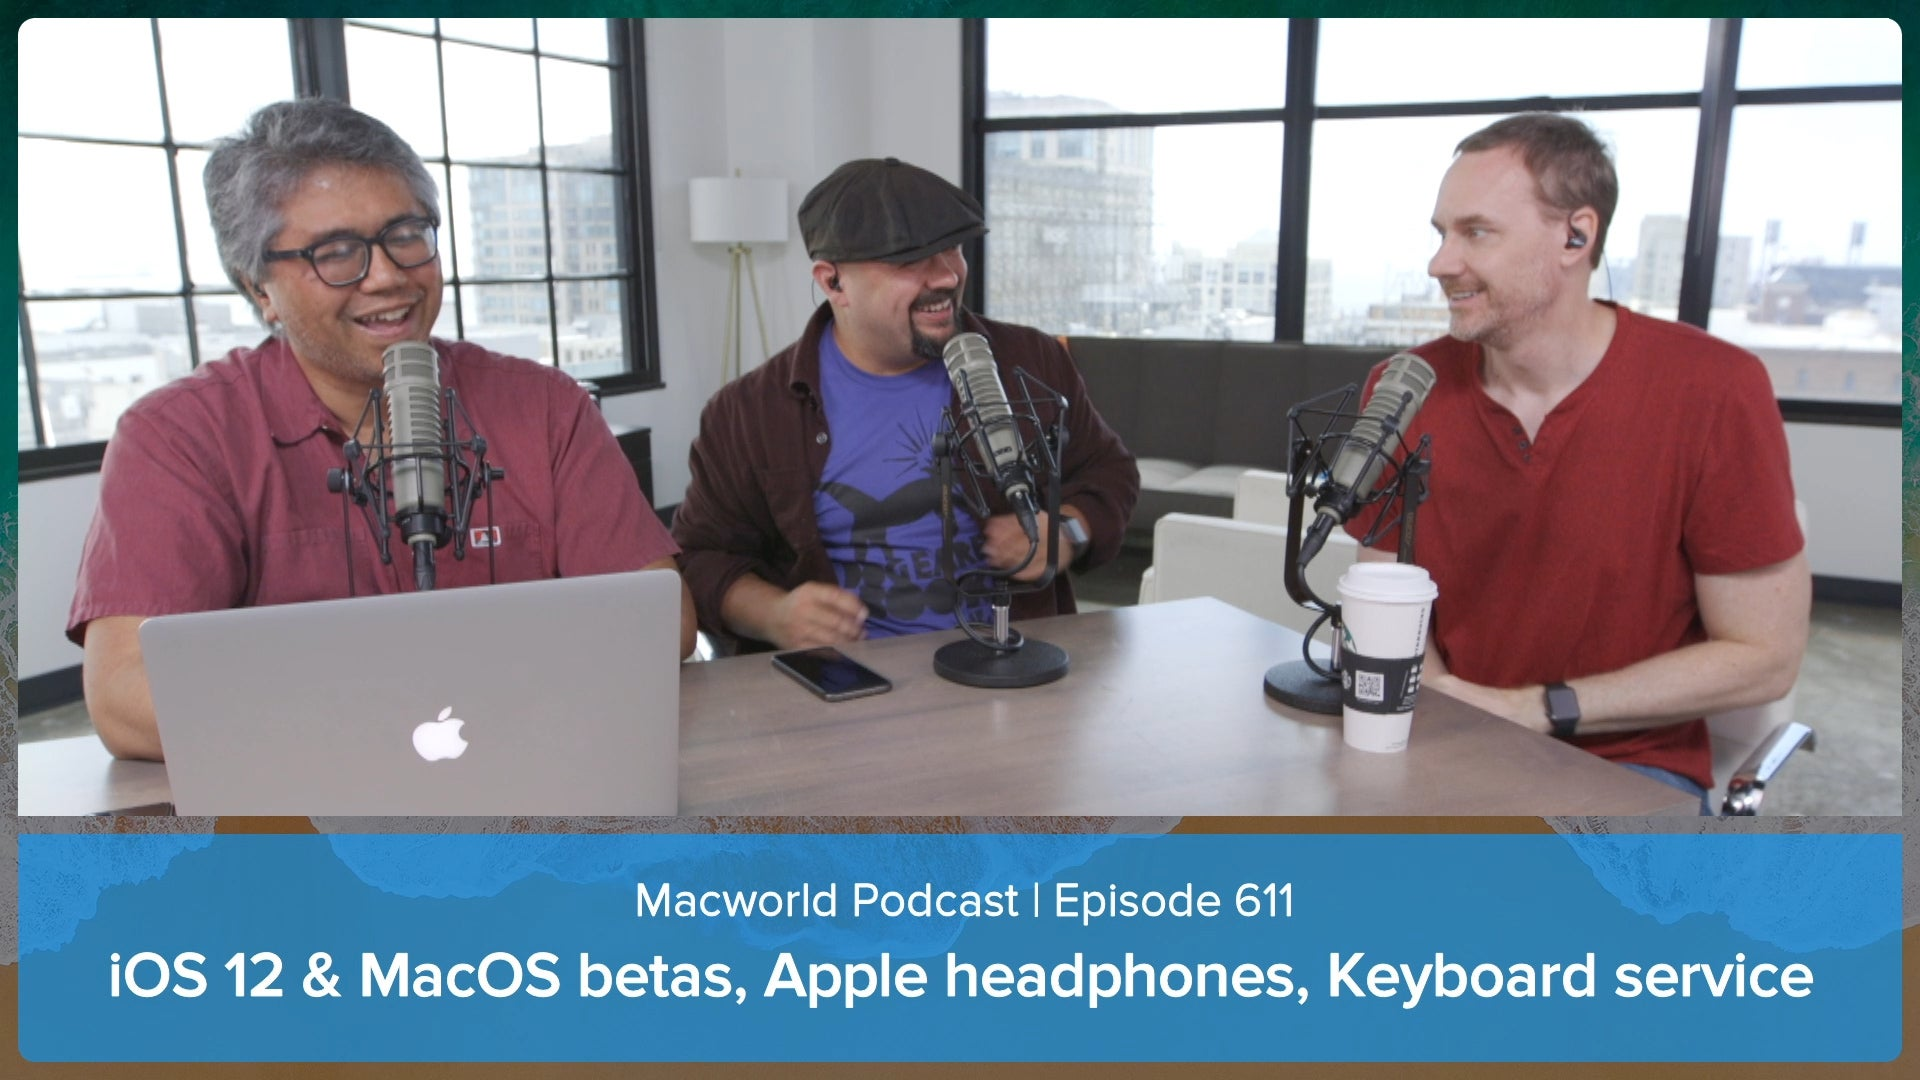 Macworld Podcast 611